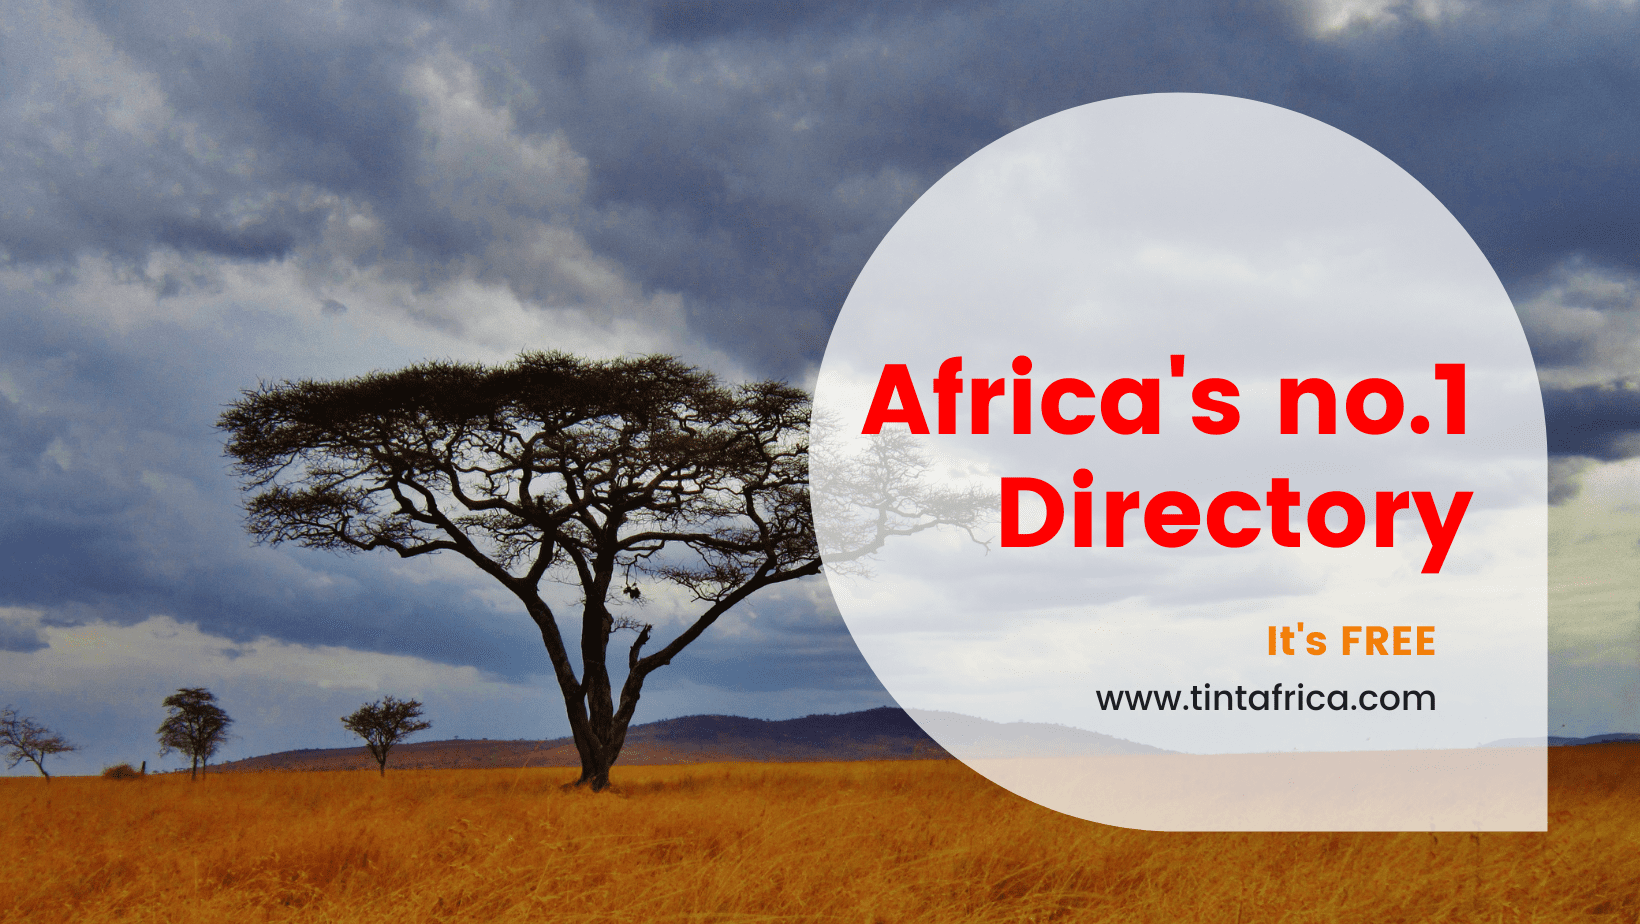 Tint Africa is the new free directory for African businesses